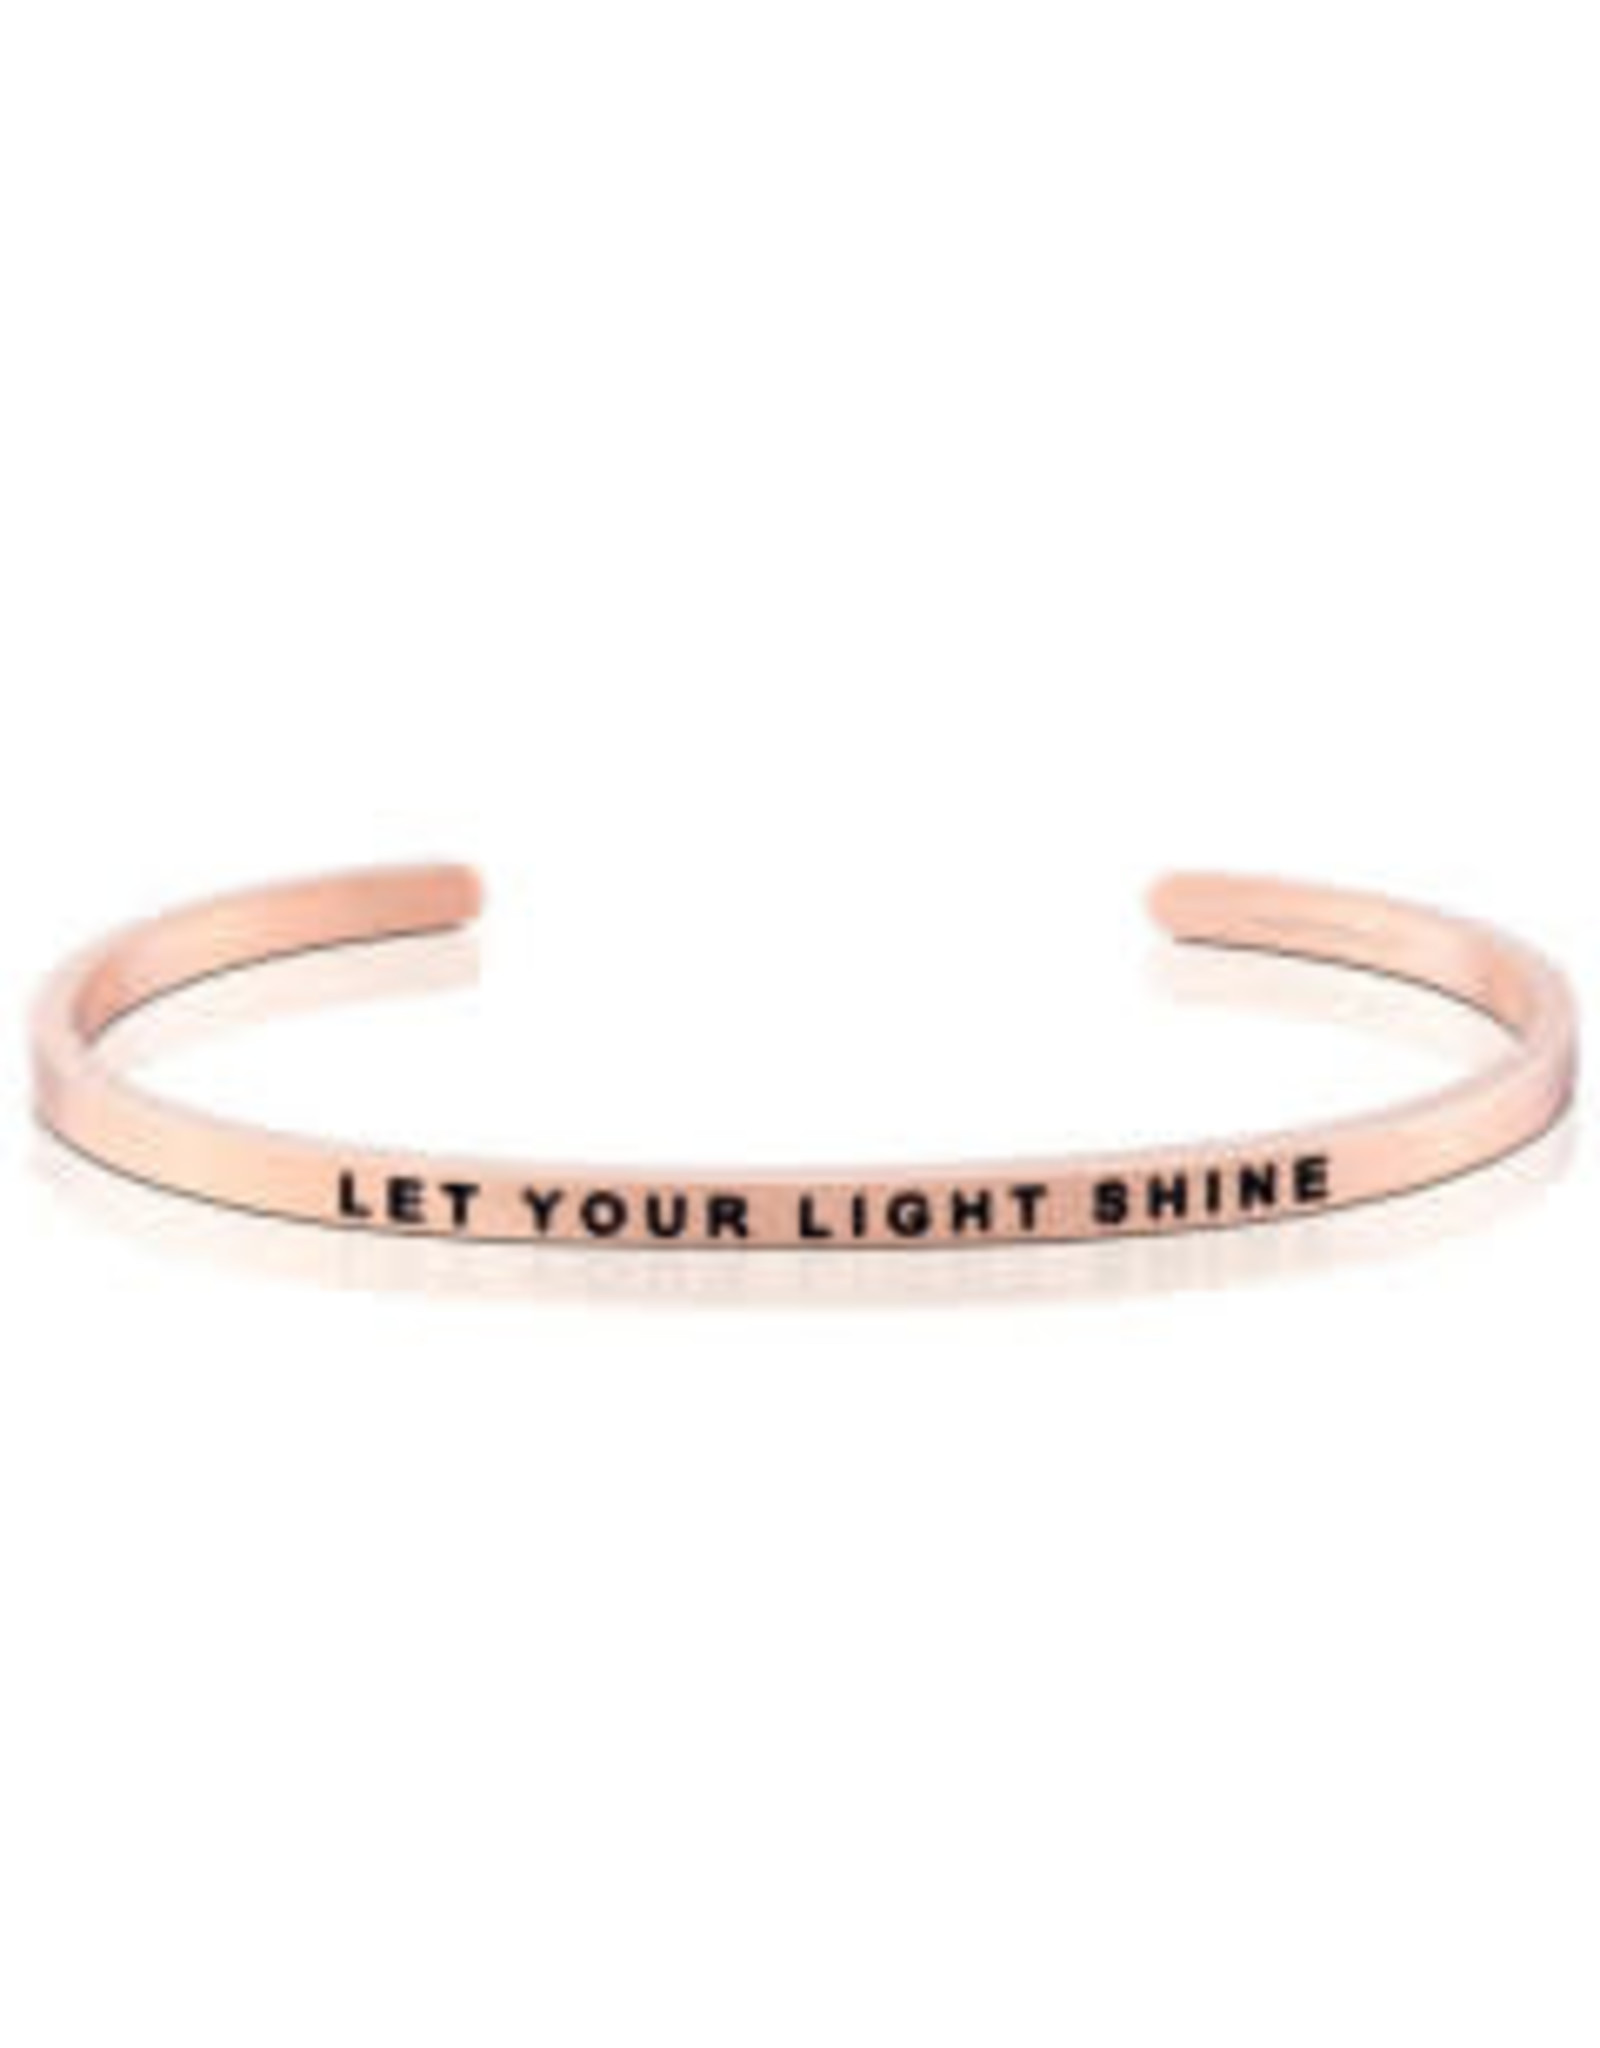 MantraBand MantraBand Bracelet, Let Your Light Shine